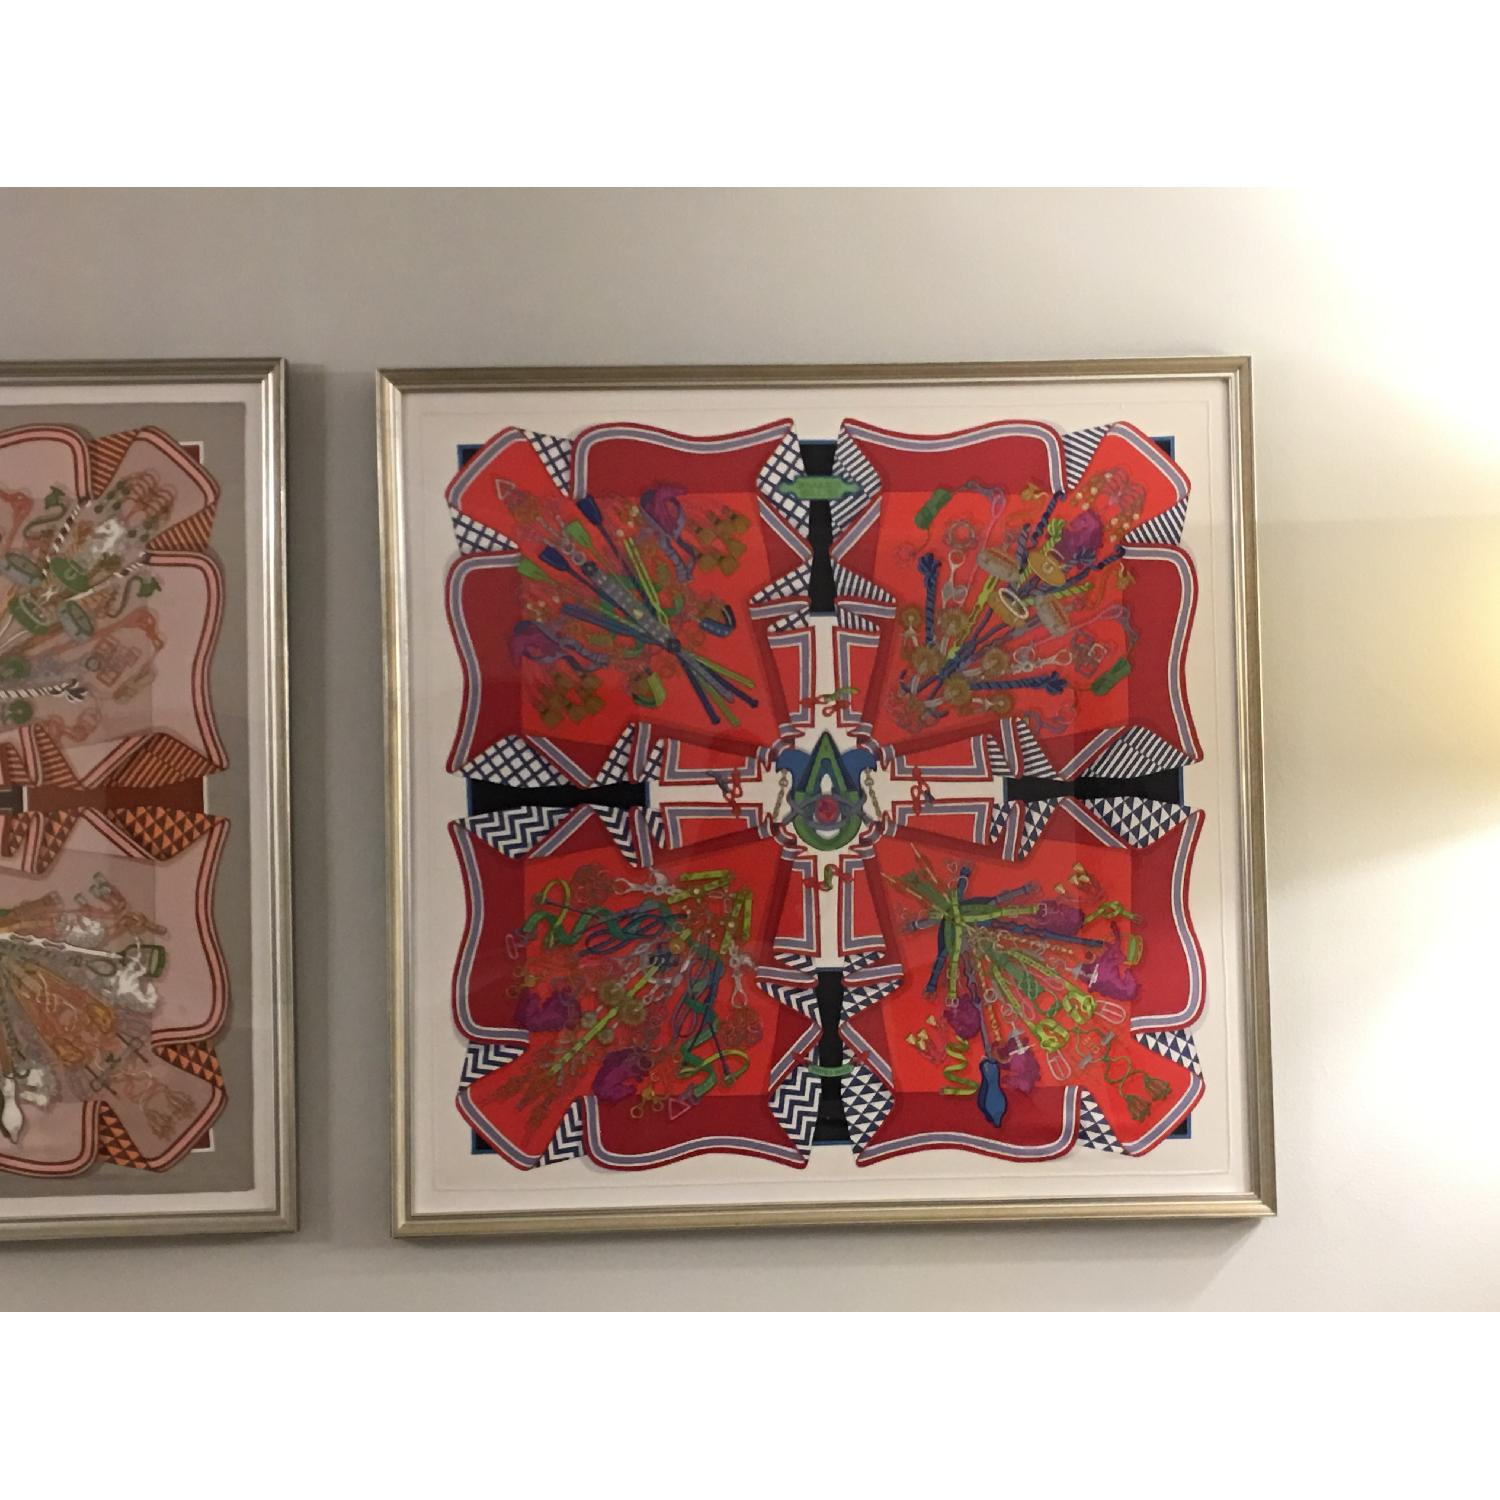 Hermes Framed Scarf Bouquet Sellier in Red - image-1